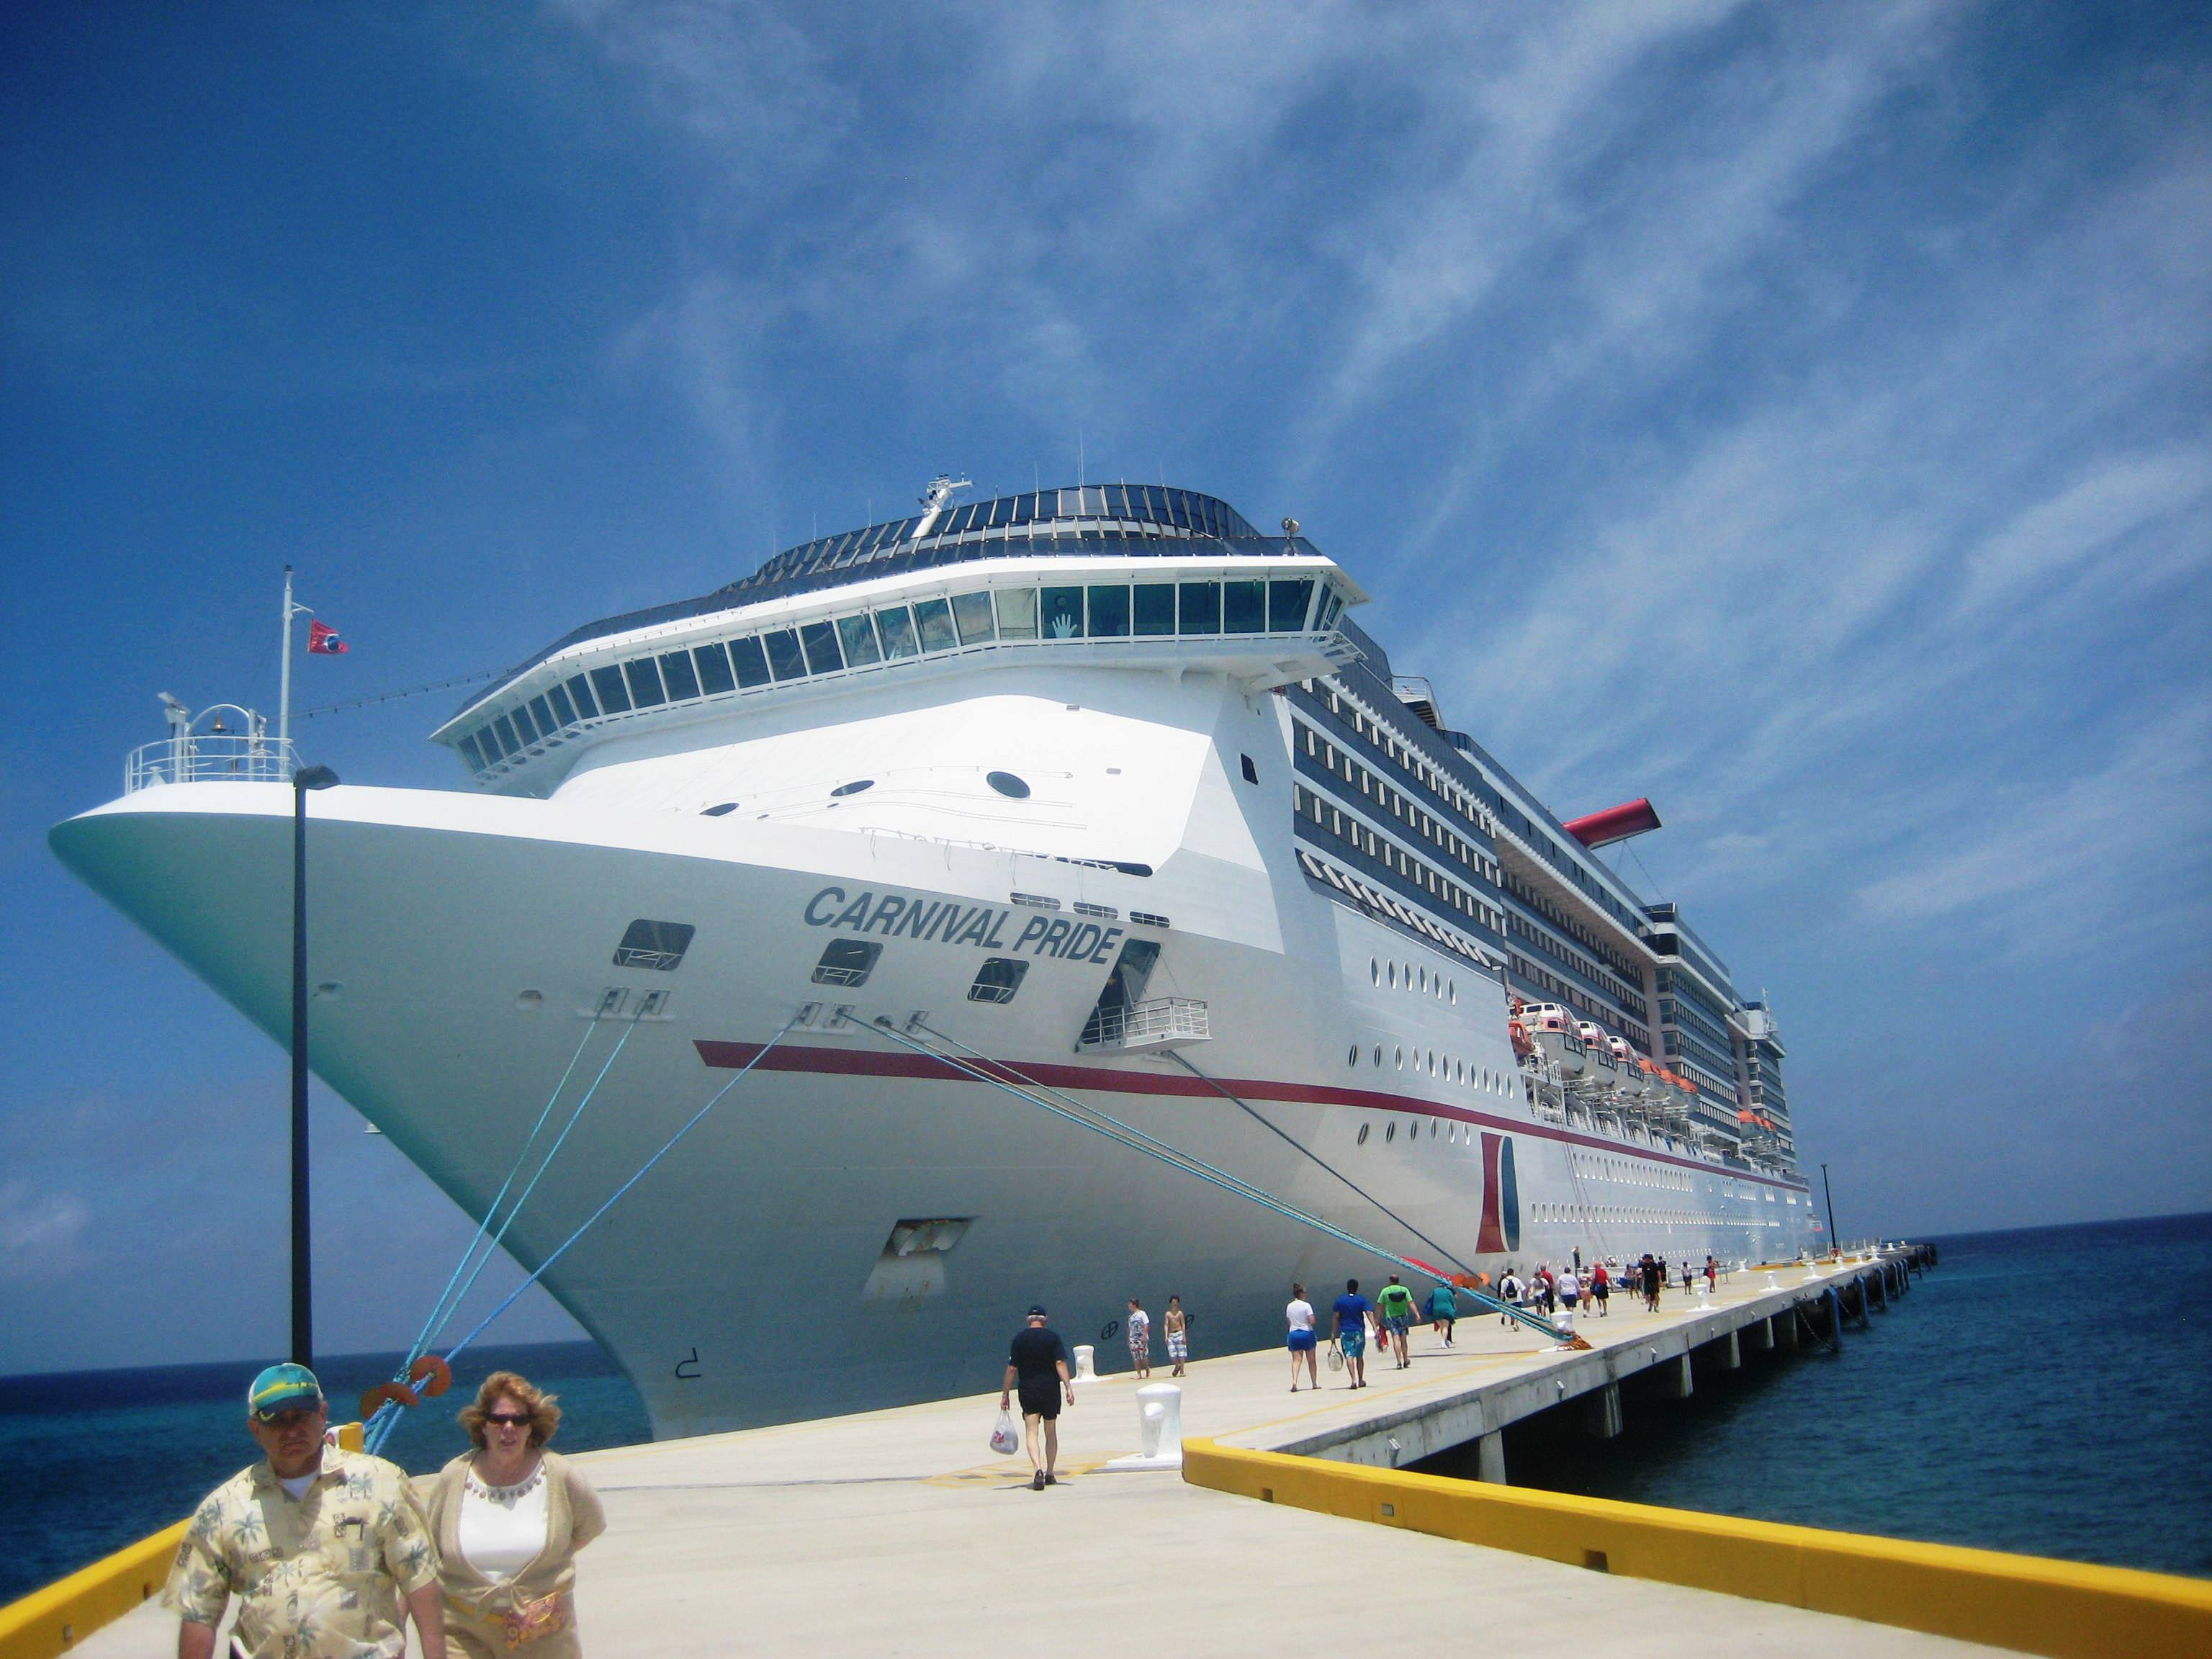 The Carnival Pride docked in Grand Turk